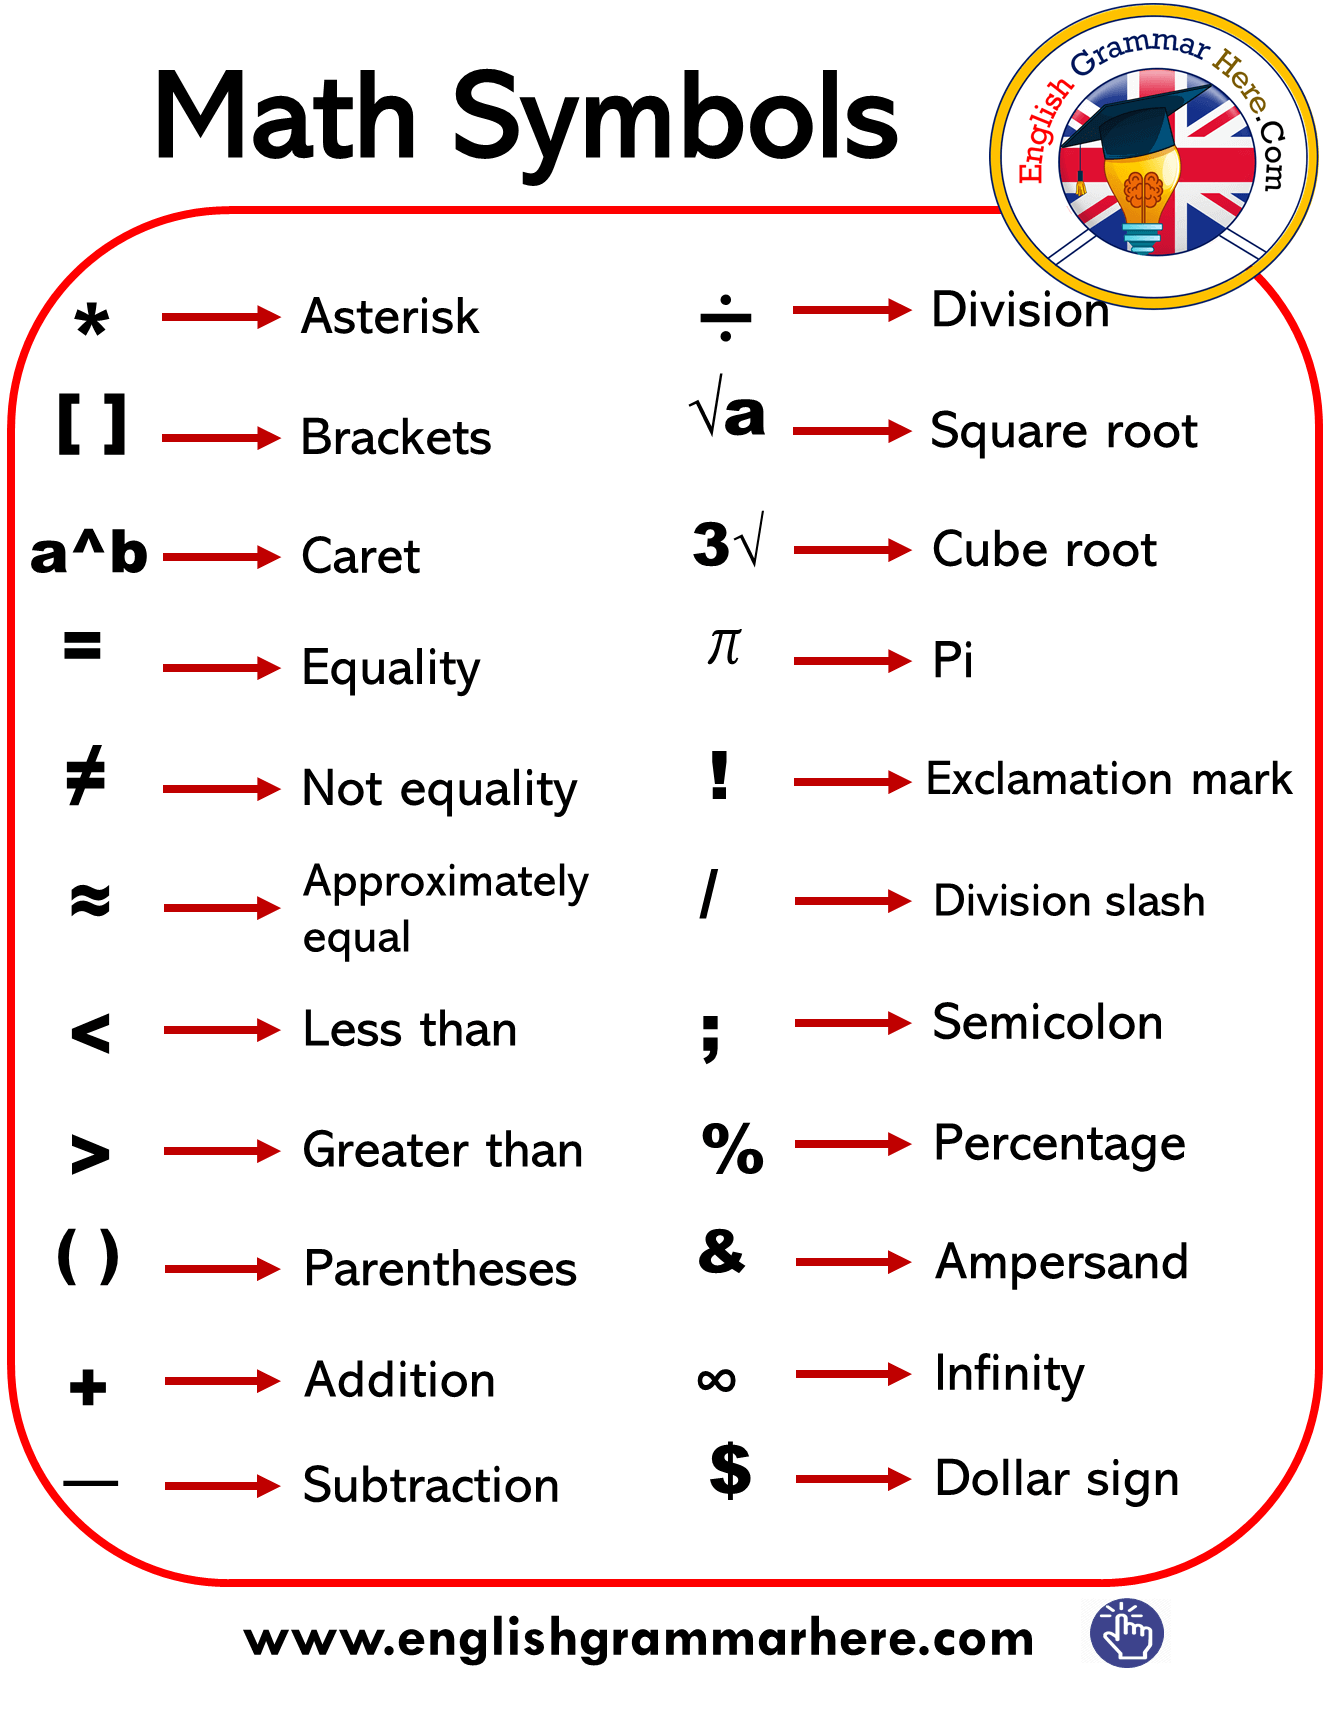 Math Symbols & Signs List in English